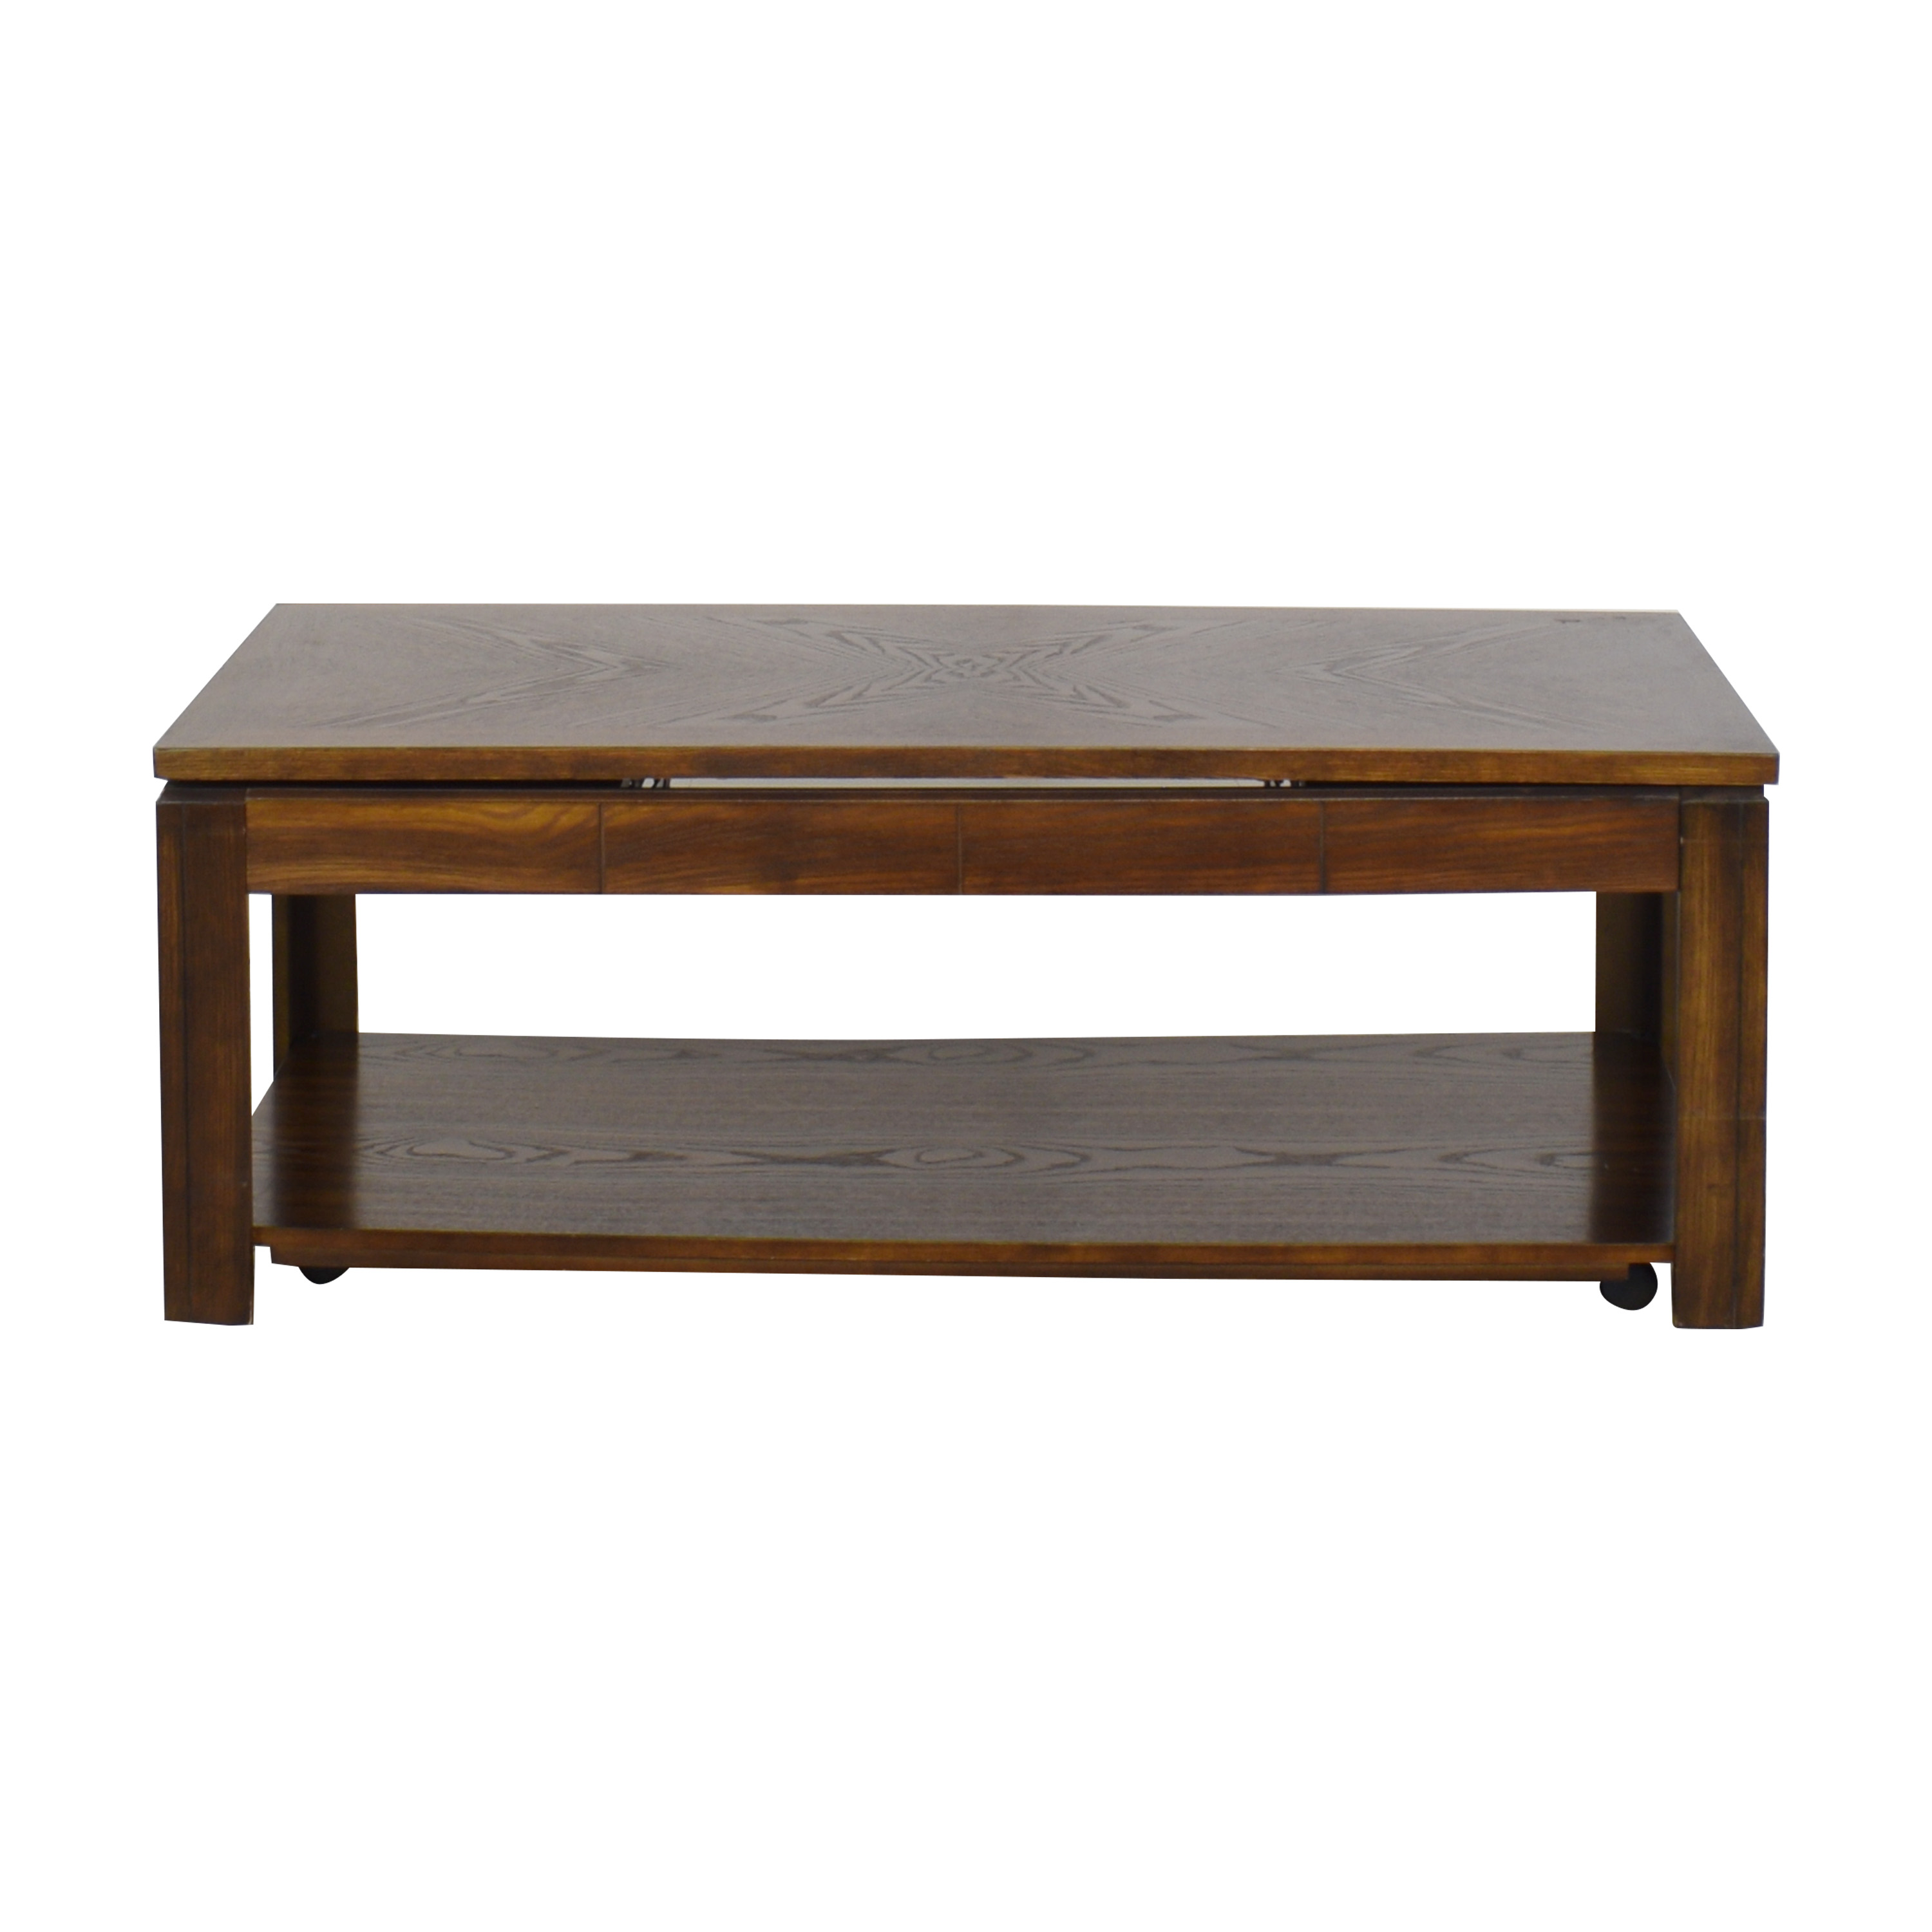 Raymour & Flanigan Raymour & Flanigan Lift Top Storage Coffee Table on sale